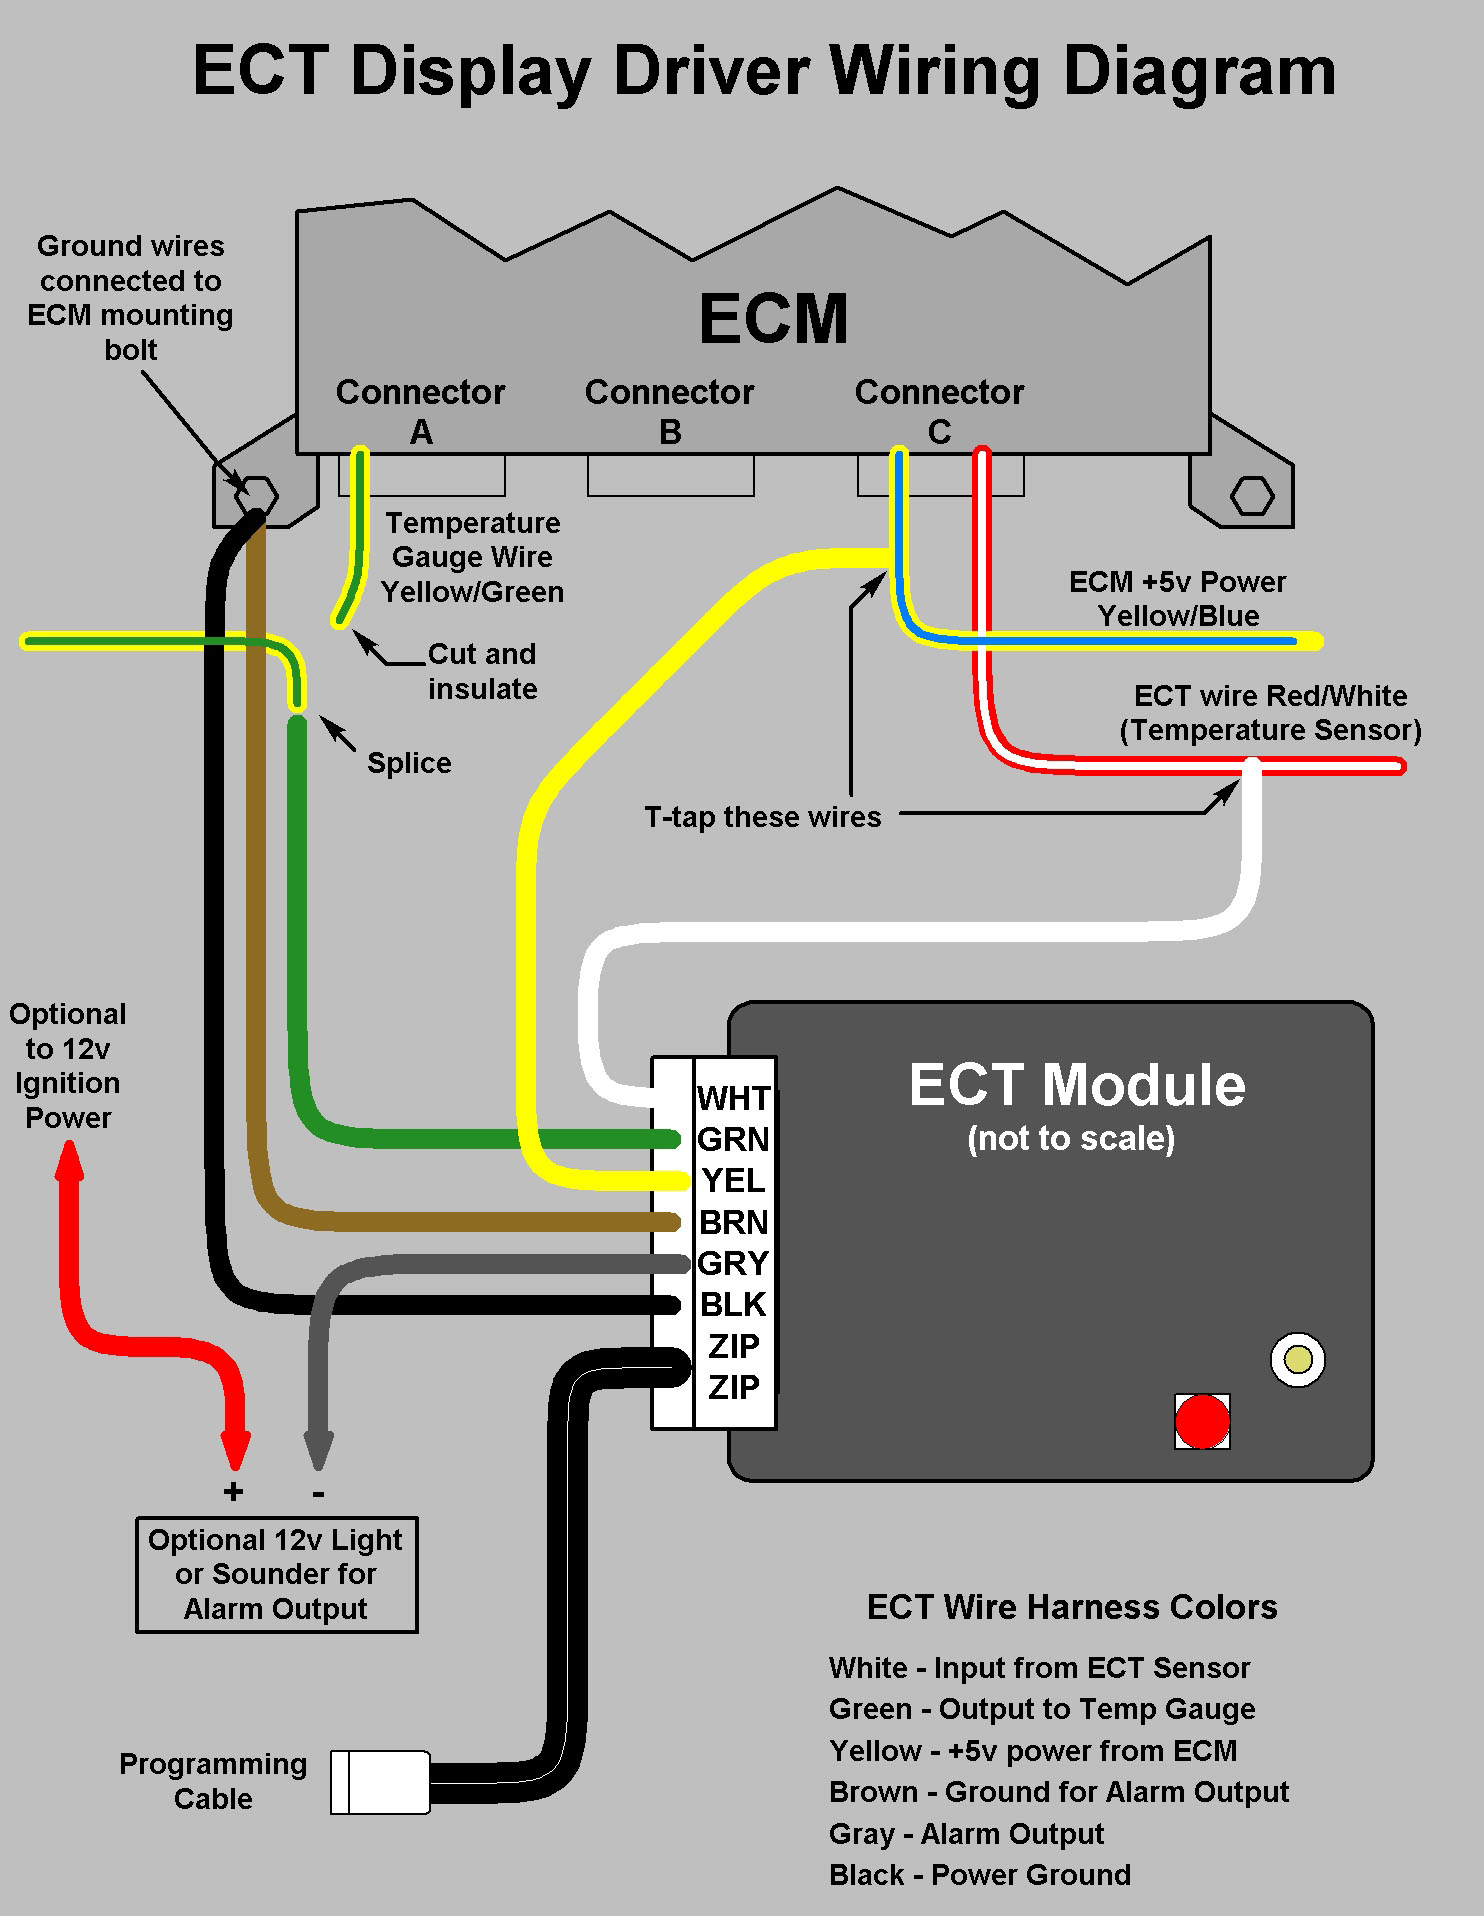 C131 Green Plug Wiring Schematics Teamintegragreen 98 Honda Civic Ecu Ect Diagramresize6652c859 1998 Diagram